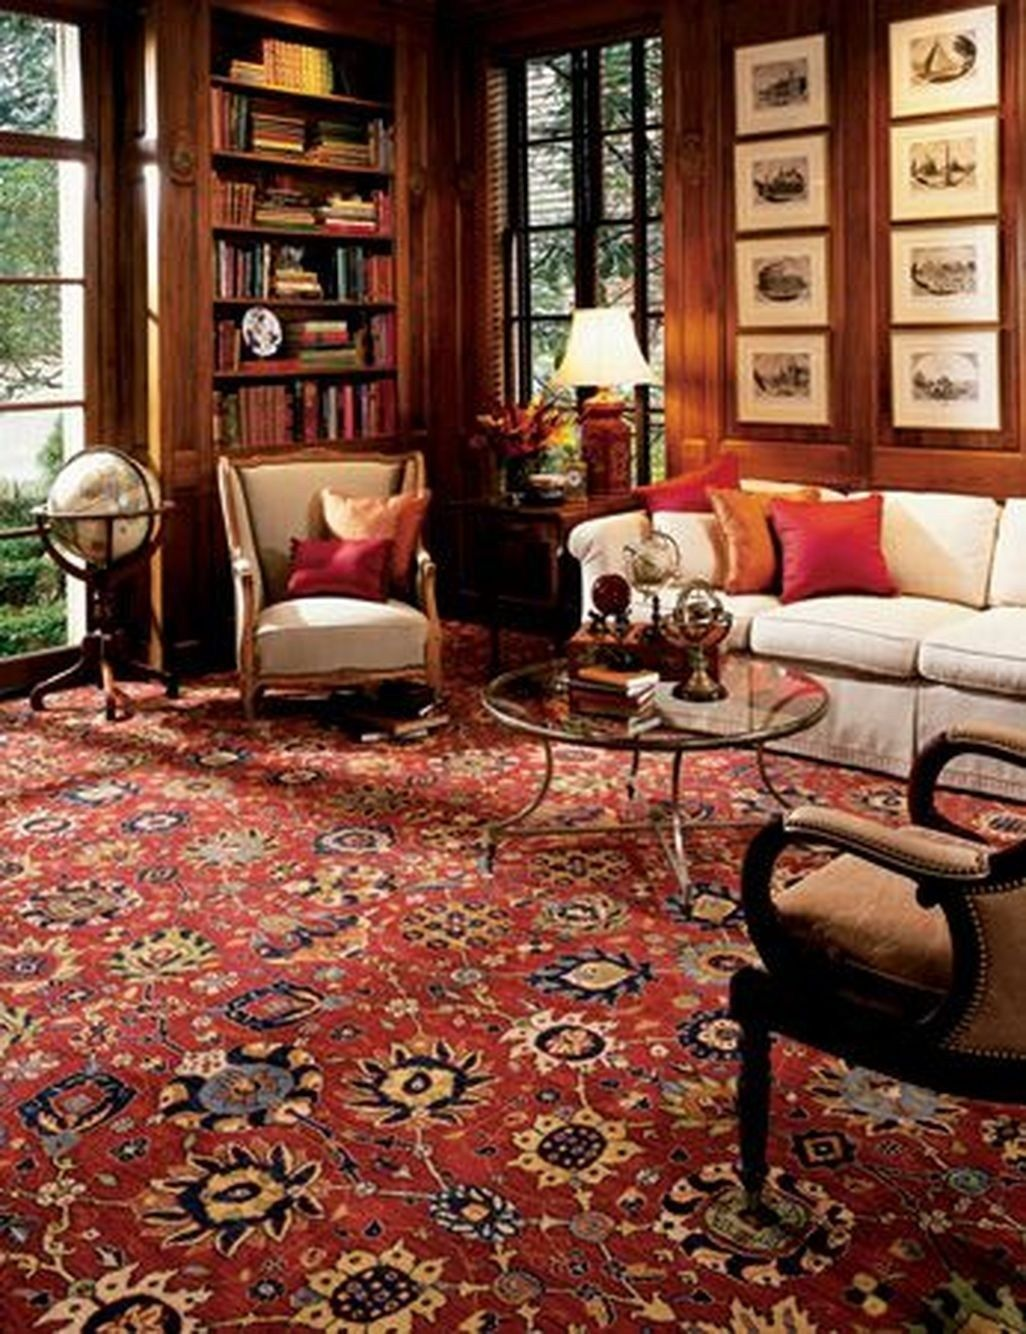 Beautiful Persian Rugs Decor Ideas To Makes Your Home Cozier 43 Persian Rug Living Room Persian Rugs Decor Oriental Rug Living Room